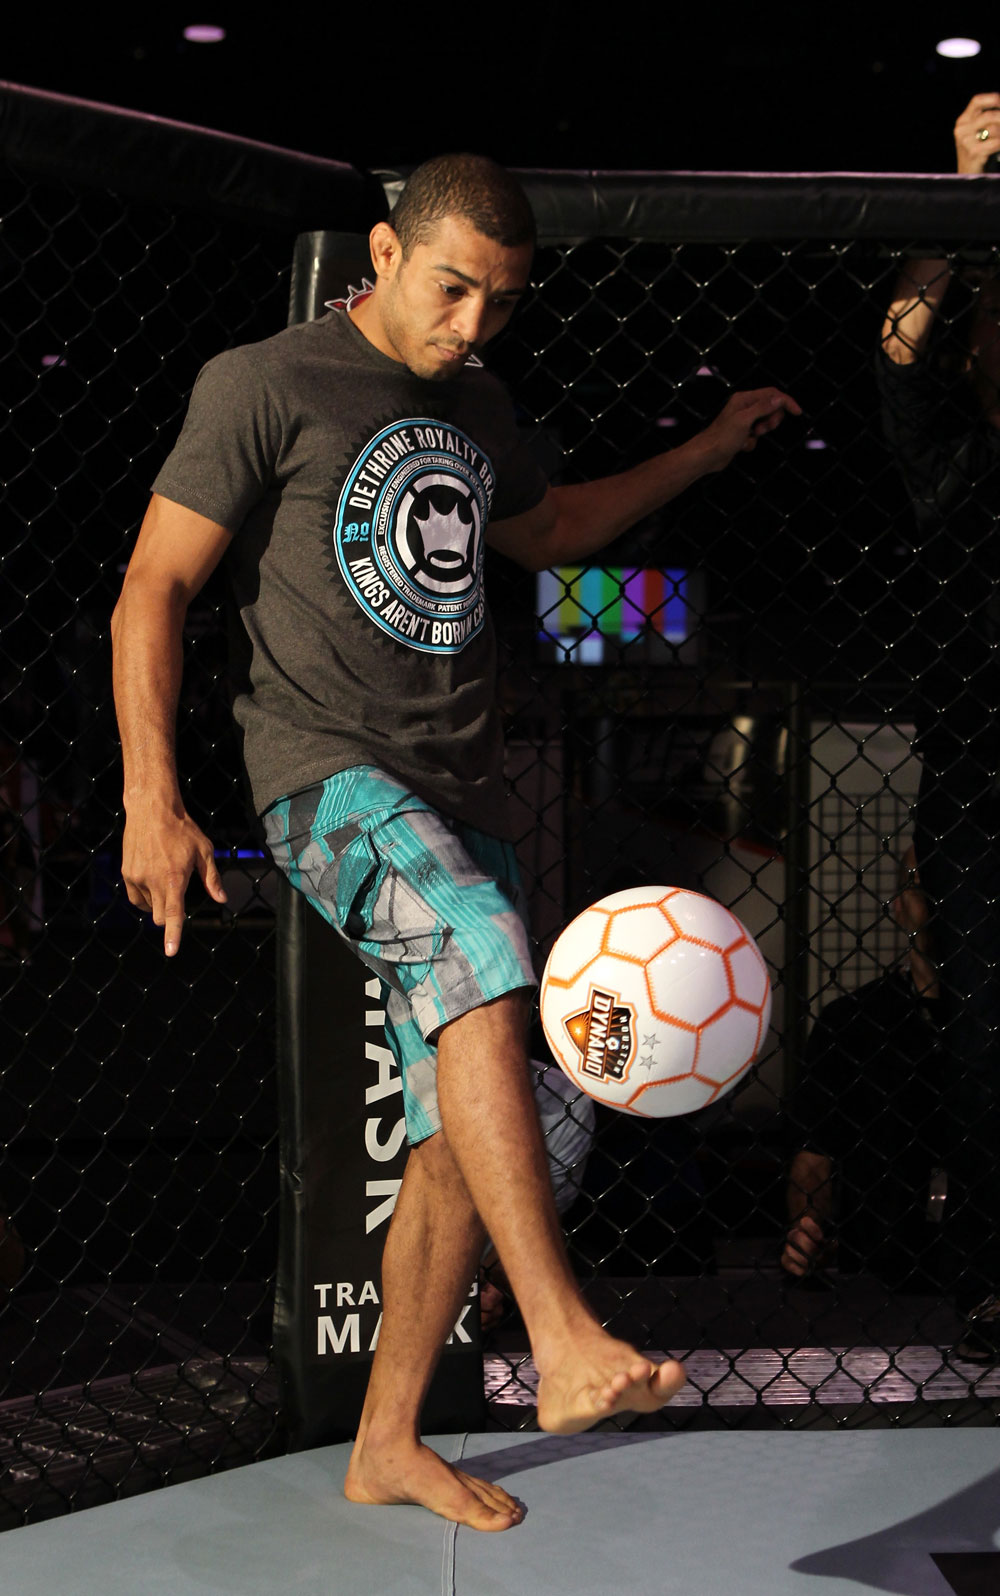 UFC featherweight champion <a href='../fighter/Jose-Aldo'>Jose Aldo</a>